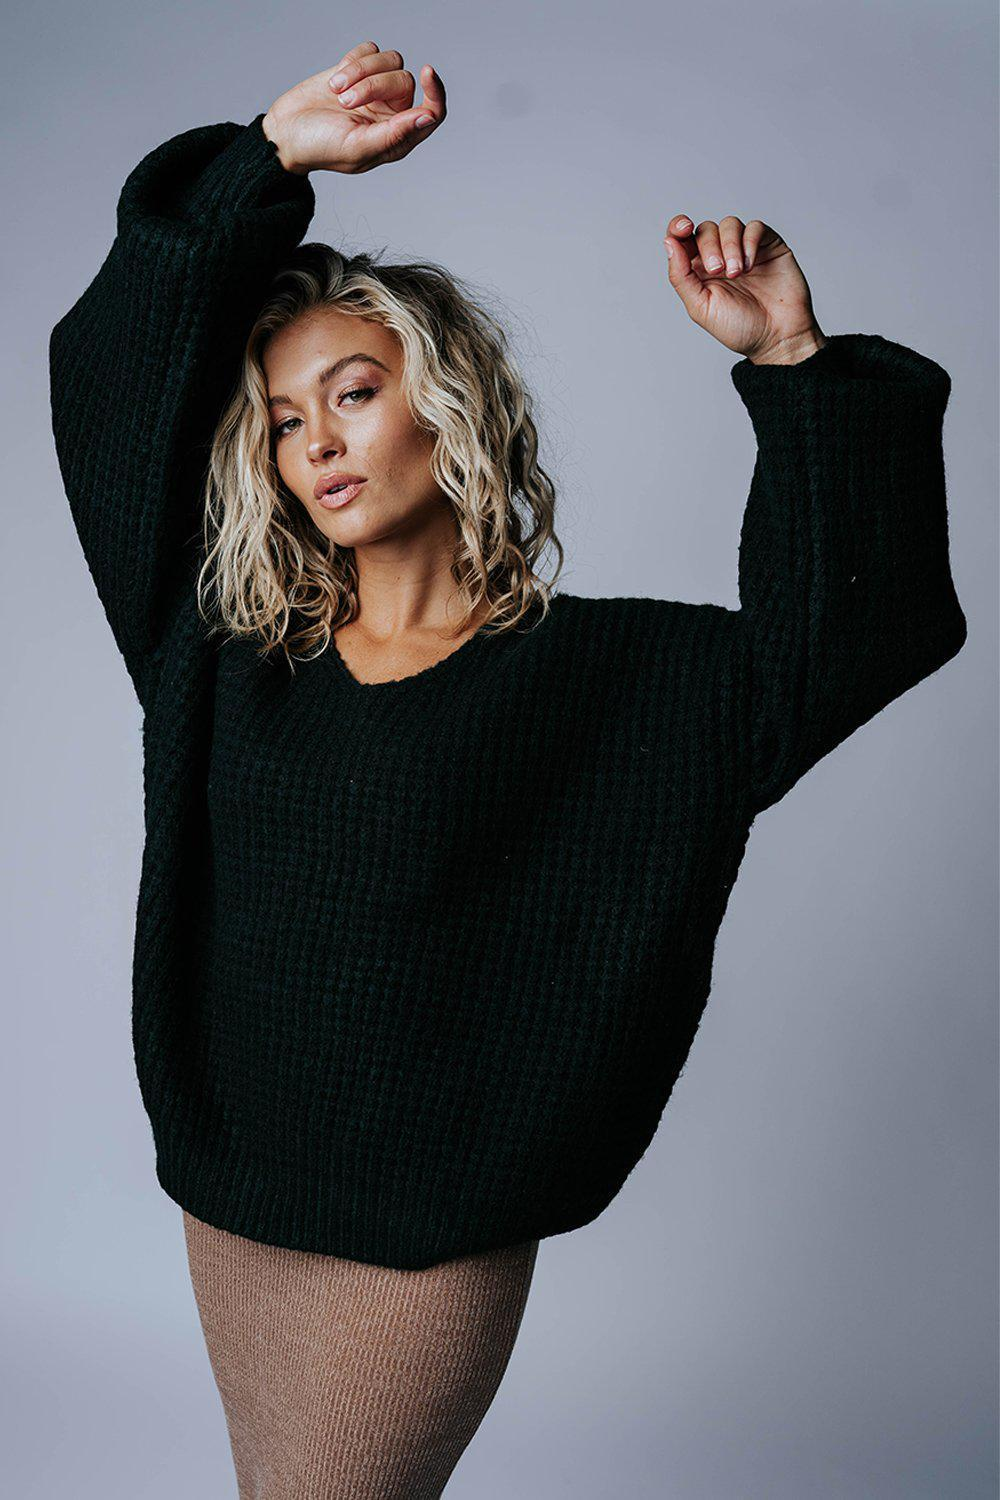 best_seller, Stayin' Alive Sweater in Evergreen, Top, women's clothing, dresses, skirts, coats, jackets, shoes, boots, tops, tee shirts, jeans, free people, levi's, rollas, jumpsuits, bottoms, tops, sweaters, pullovers, pants, shorts, sweats,.